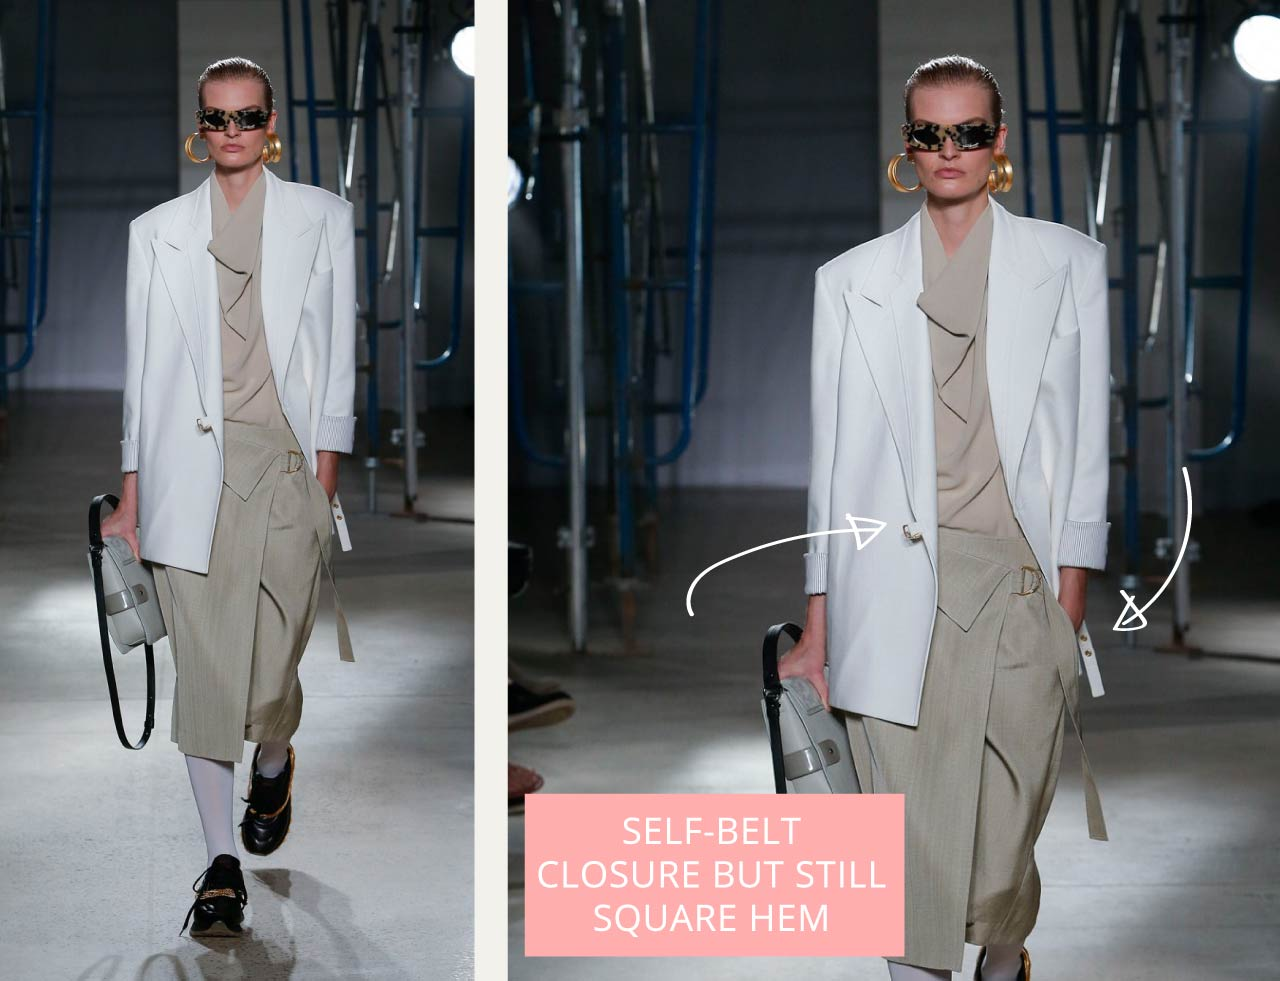 Proenza Schouler, SS20 on The Cutting Class. Self belt closure on suit jacket with straight front corners.